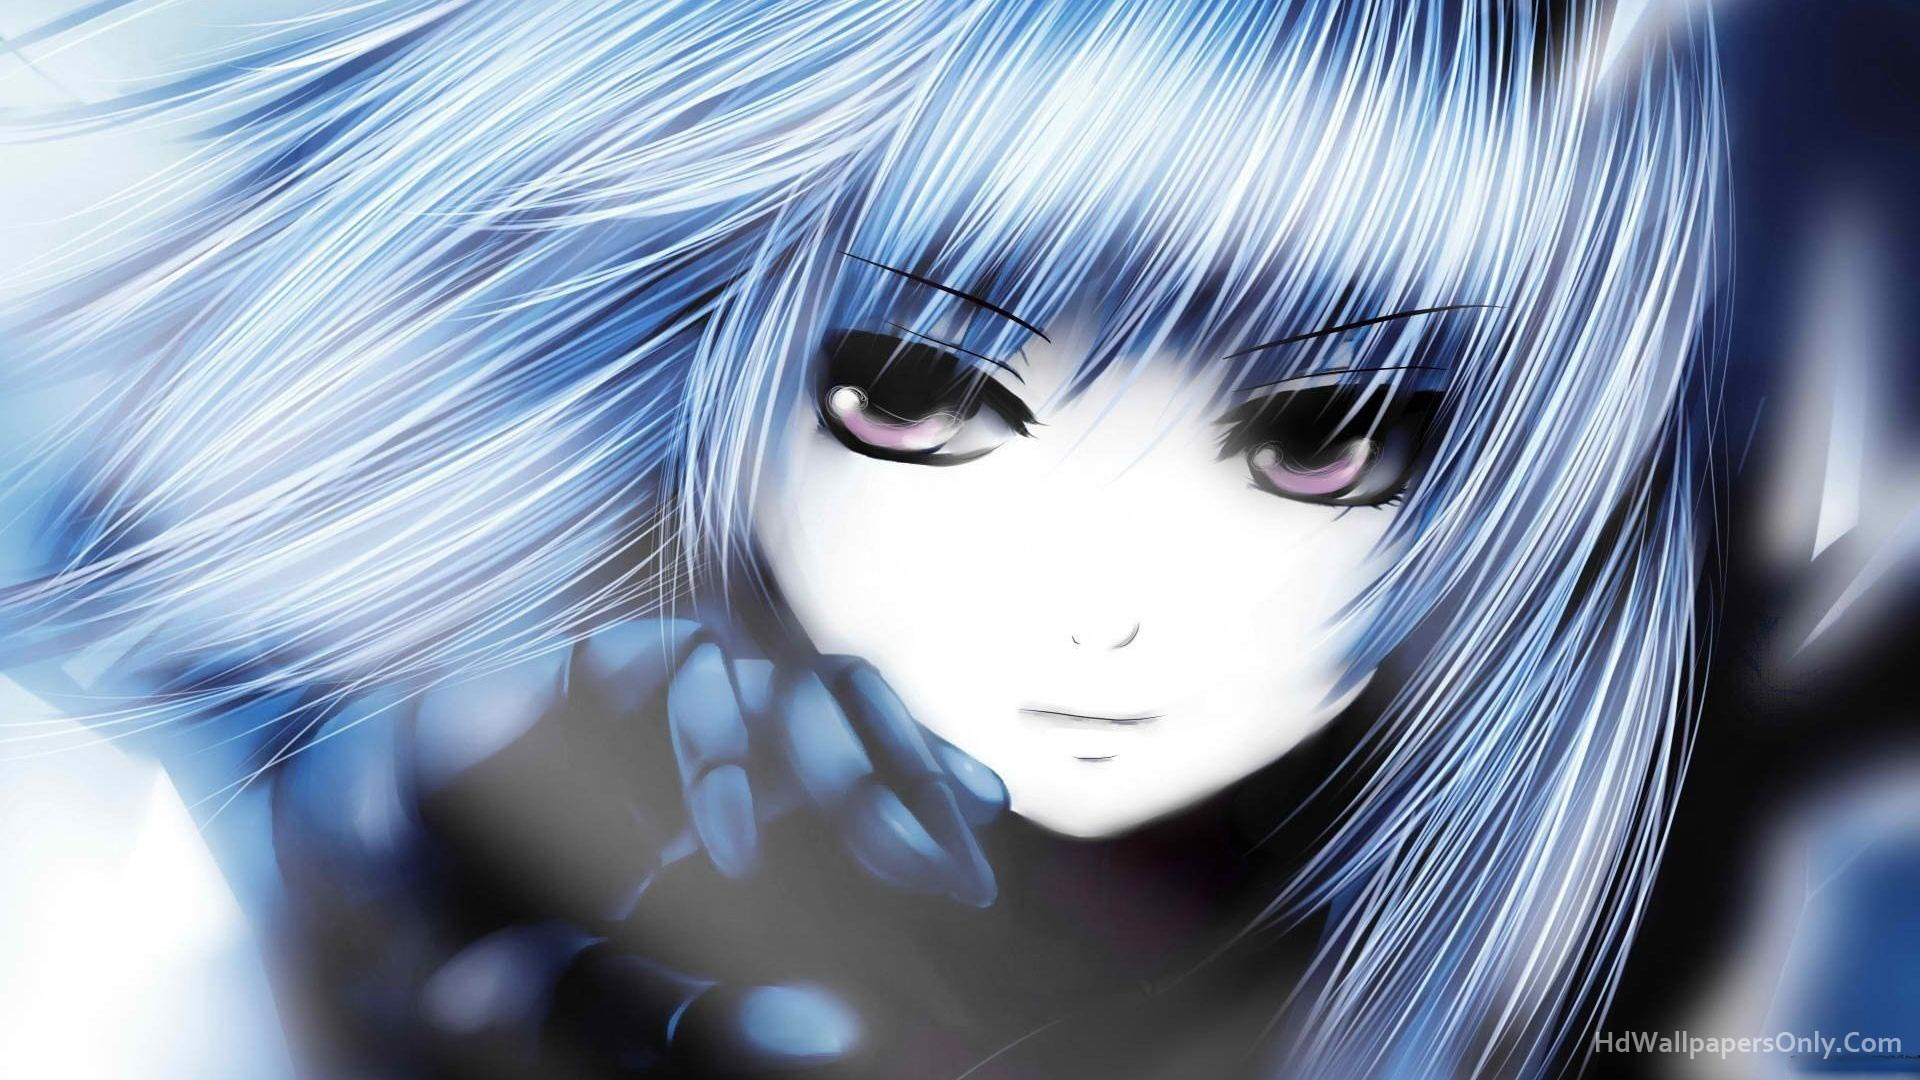 Full hd anime wallpapers full hd pictures - Anime full hd download ...